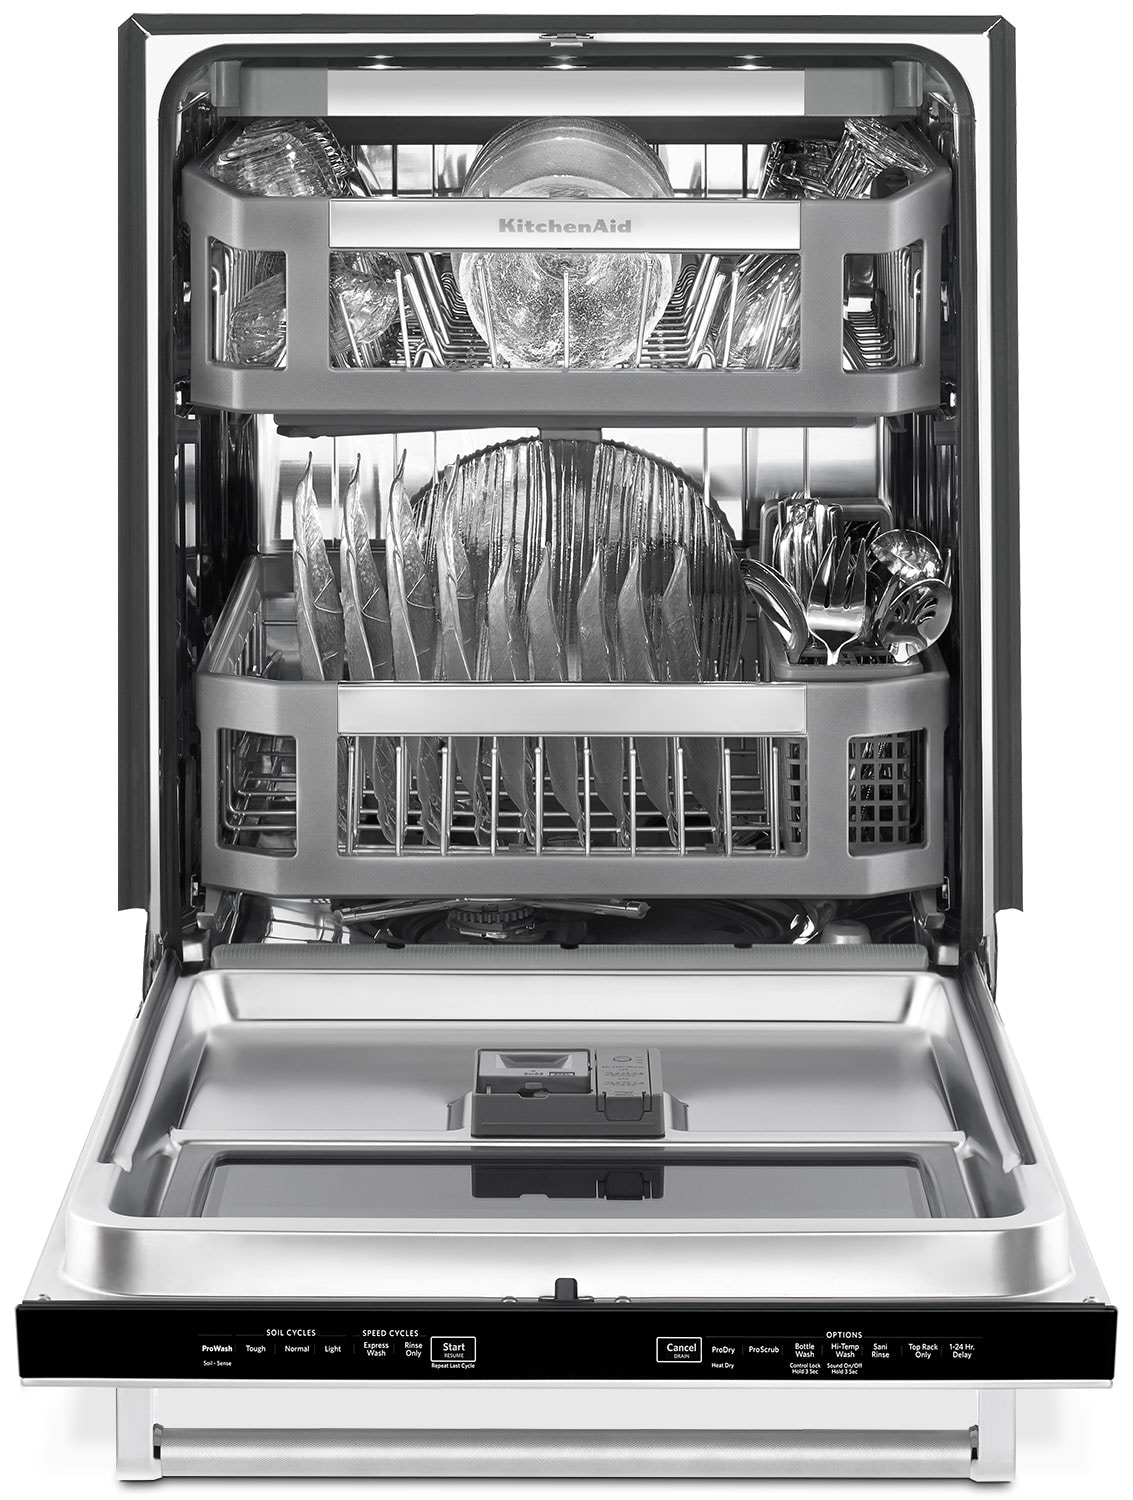 Kitchenaid 24 dishwasher with window and lighted interior - Dishwasher with stainless steel interior ...